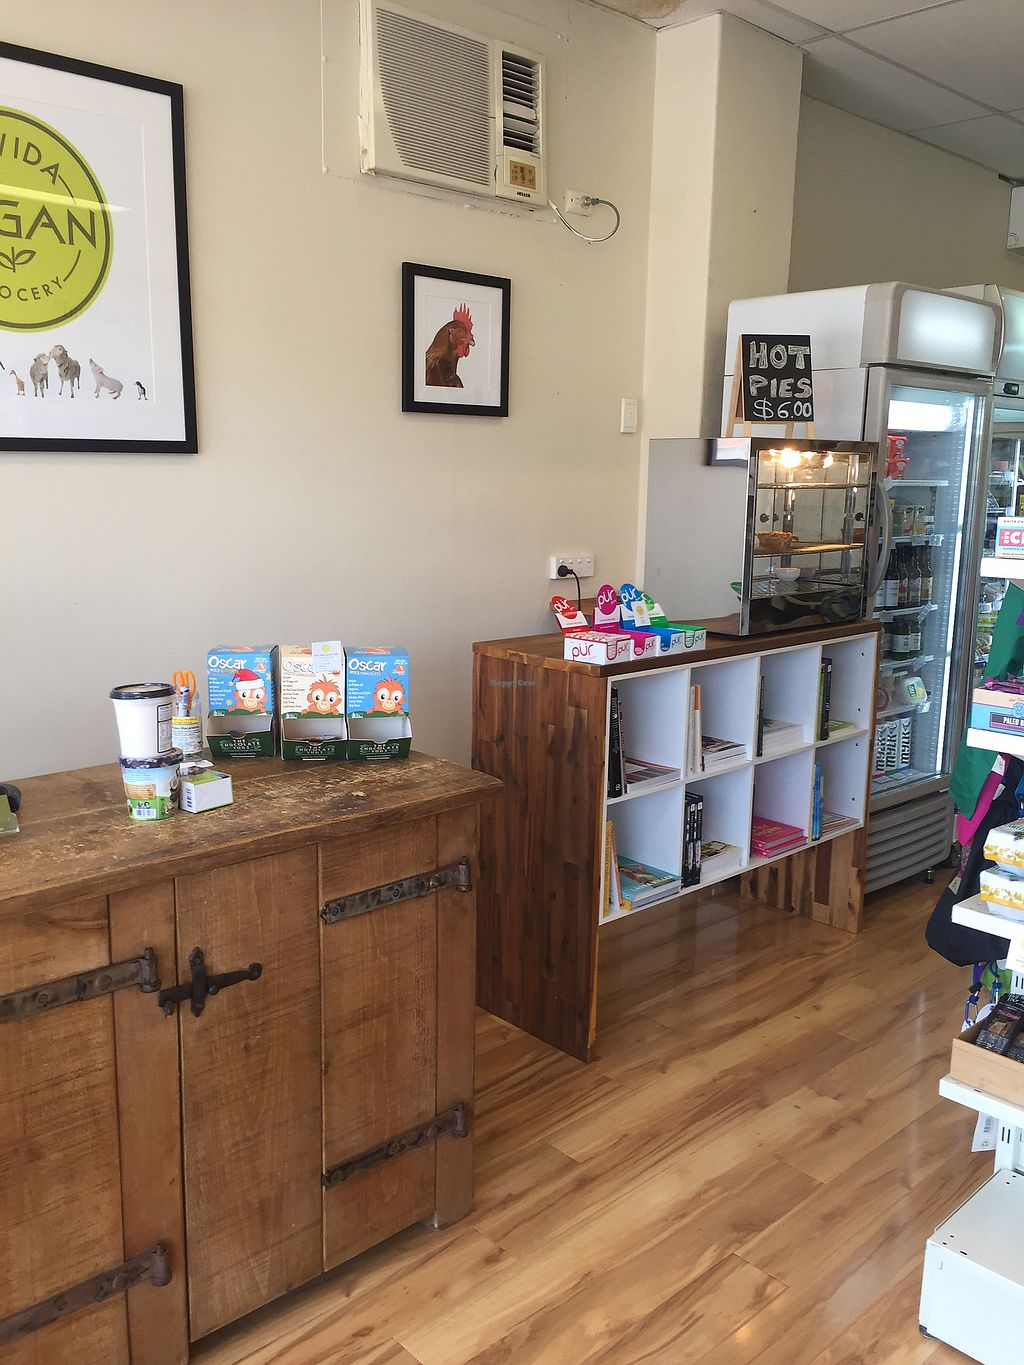 """Photo of La Vida Vegan Grocery  by <a href=""""/members/profile/ExpatAnnie"""">ExpatAnnie</a> <br/>Now has hot pies! <br/> February 1, 2018  - <a href='/contact/abuse/image/66342/353424'>Report</a>"""